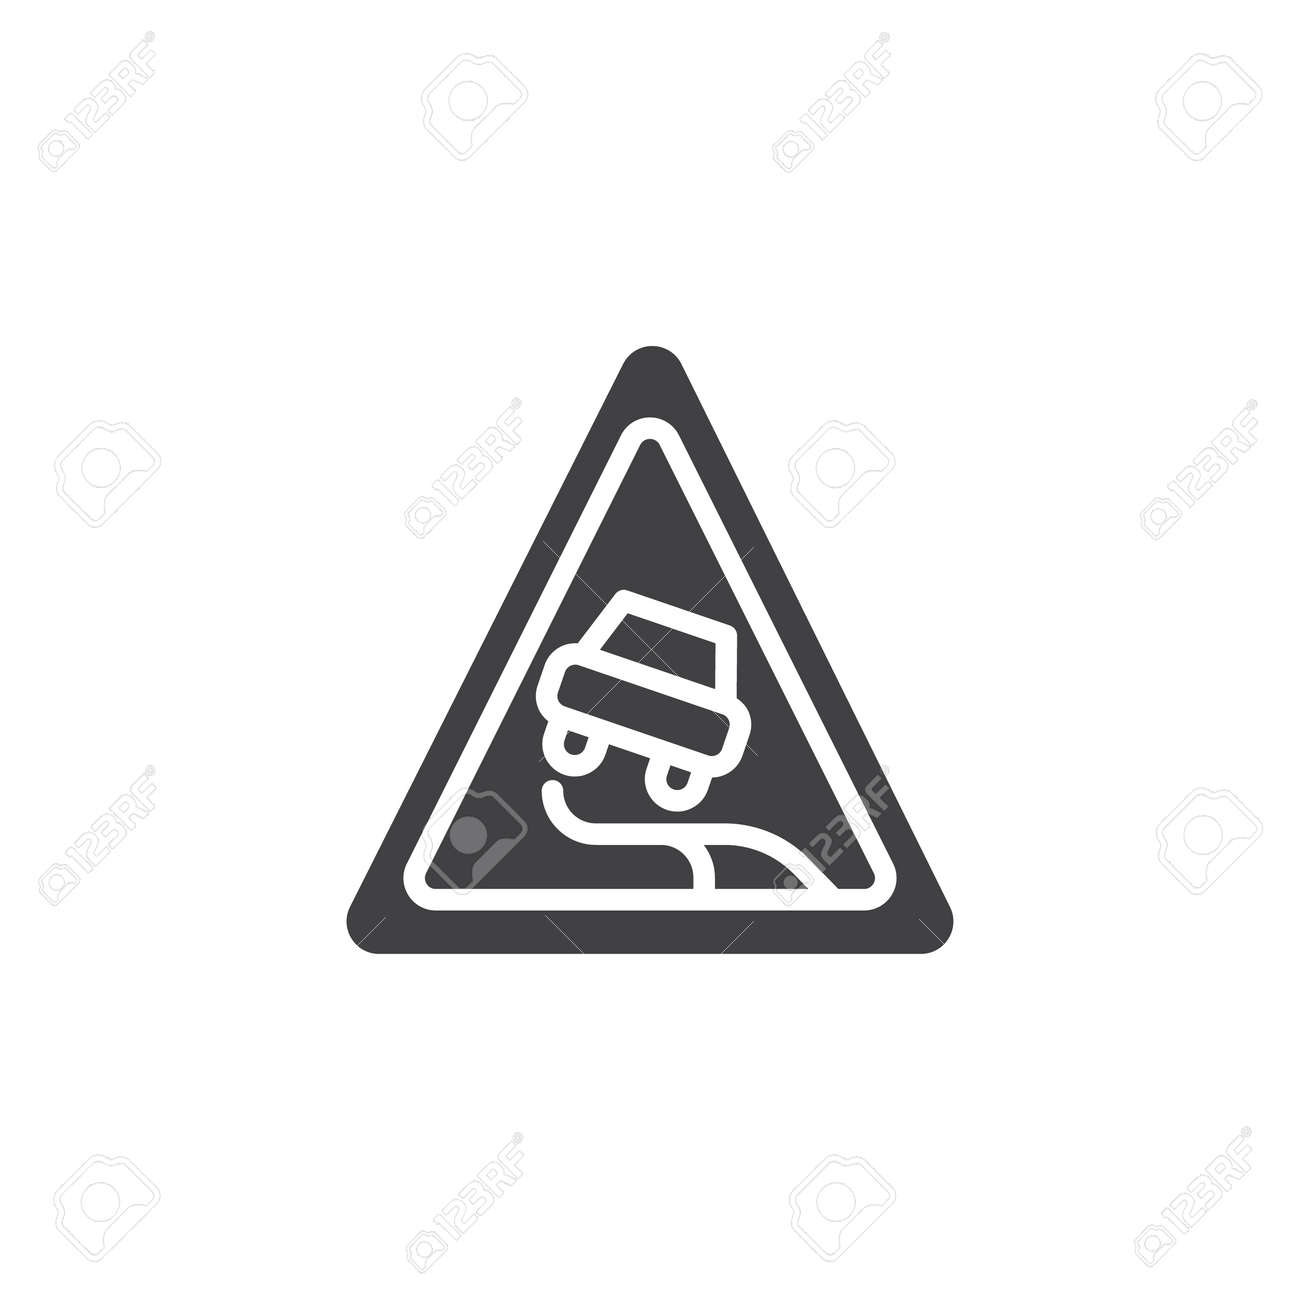 Traffic Signs Slippery Road Clipart Road Signs In Singapore - Traffic Signs Slippery  Road - Png Download (#1186407) - PinClipart